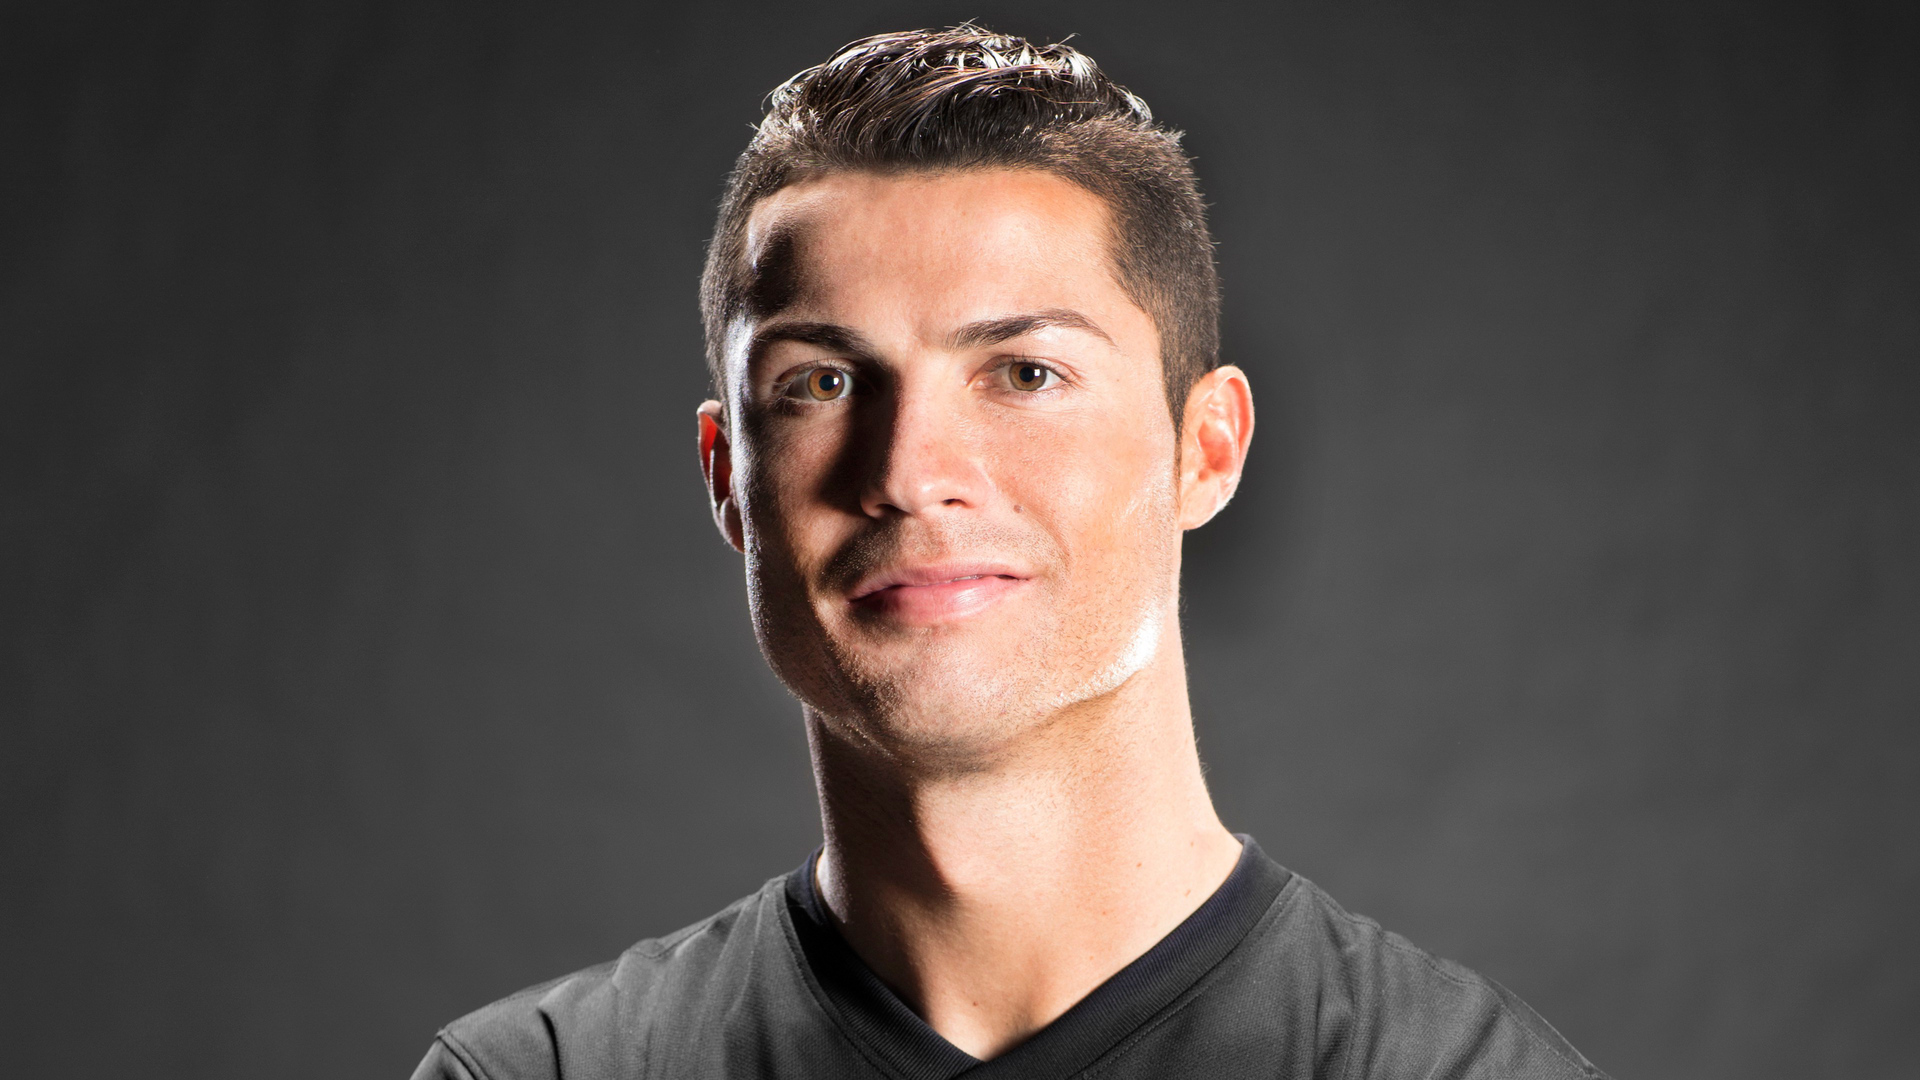 1920x1080 cristiano ronaldo 4k new laptop full hd 1080p hd 4k wallpapers images backgrounds - Cristiano ronaldo pictures hd ...